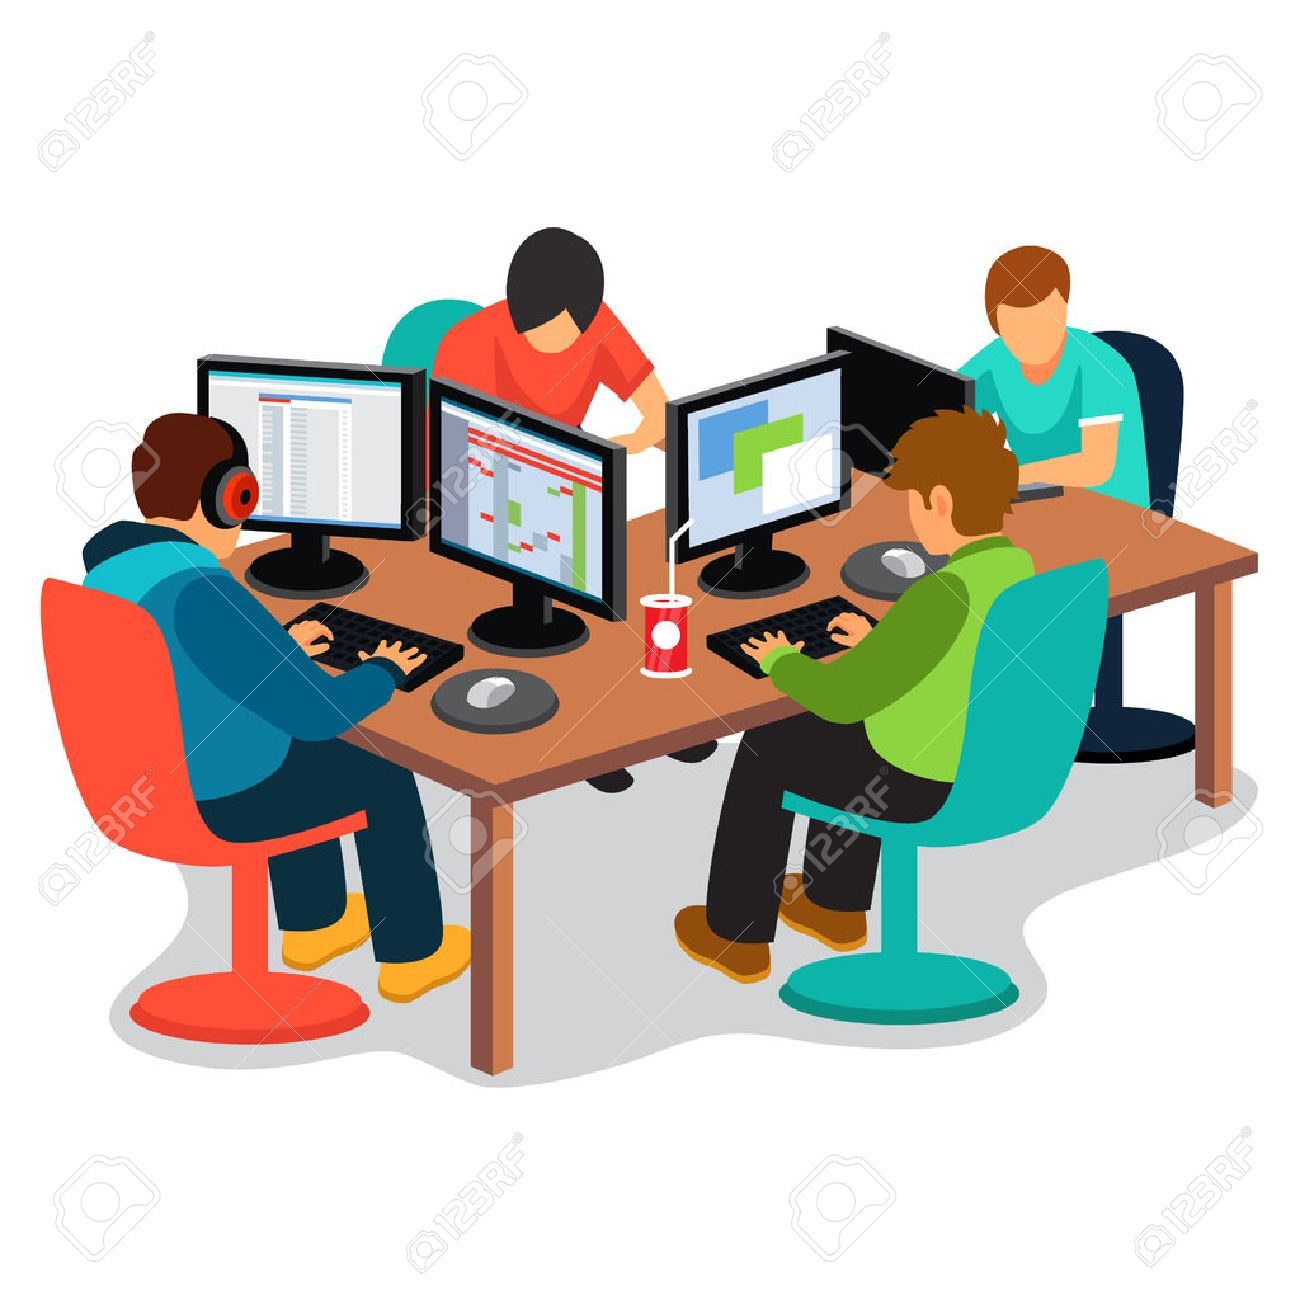 IT company at work. Group of software developers people coding together sitting in front of their pc screens at the desk. Flat style vector illustration isolated on white background. Stock Vector - 54217126